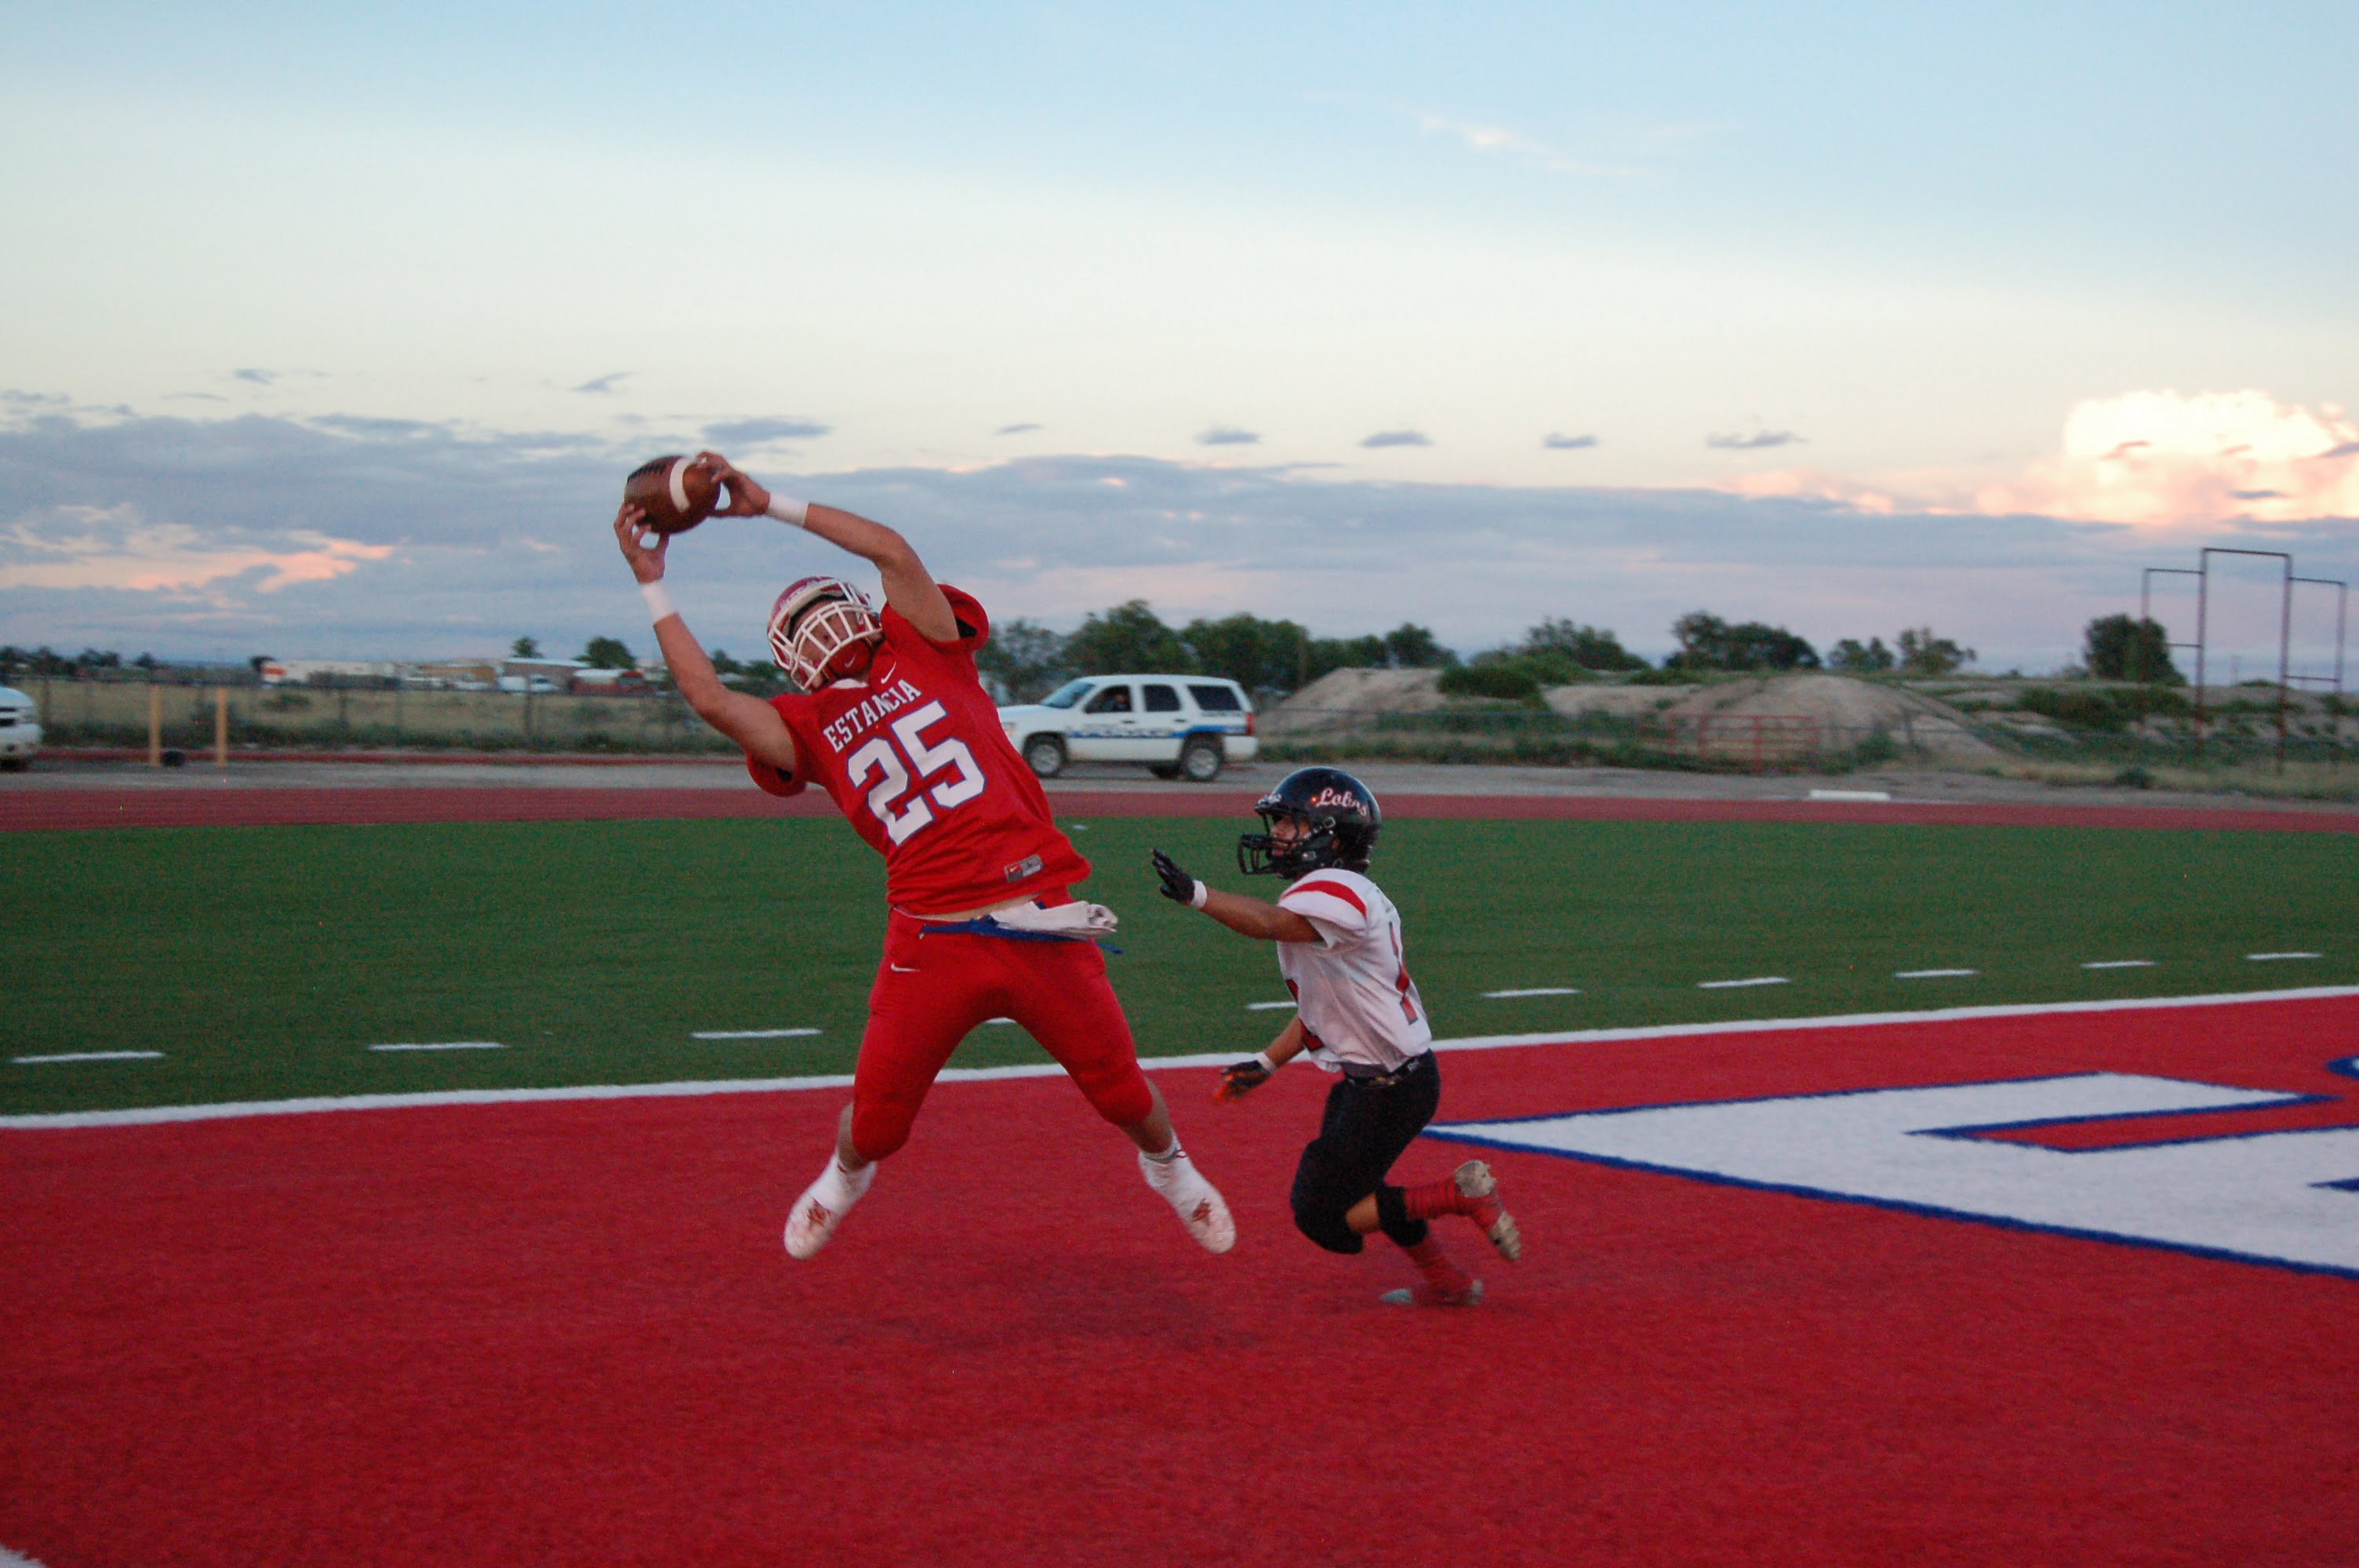 Estancia Bears rout Escalante for first win of season